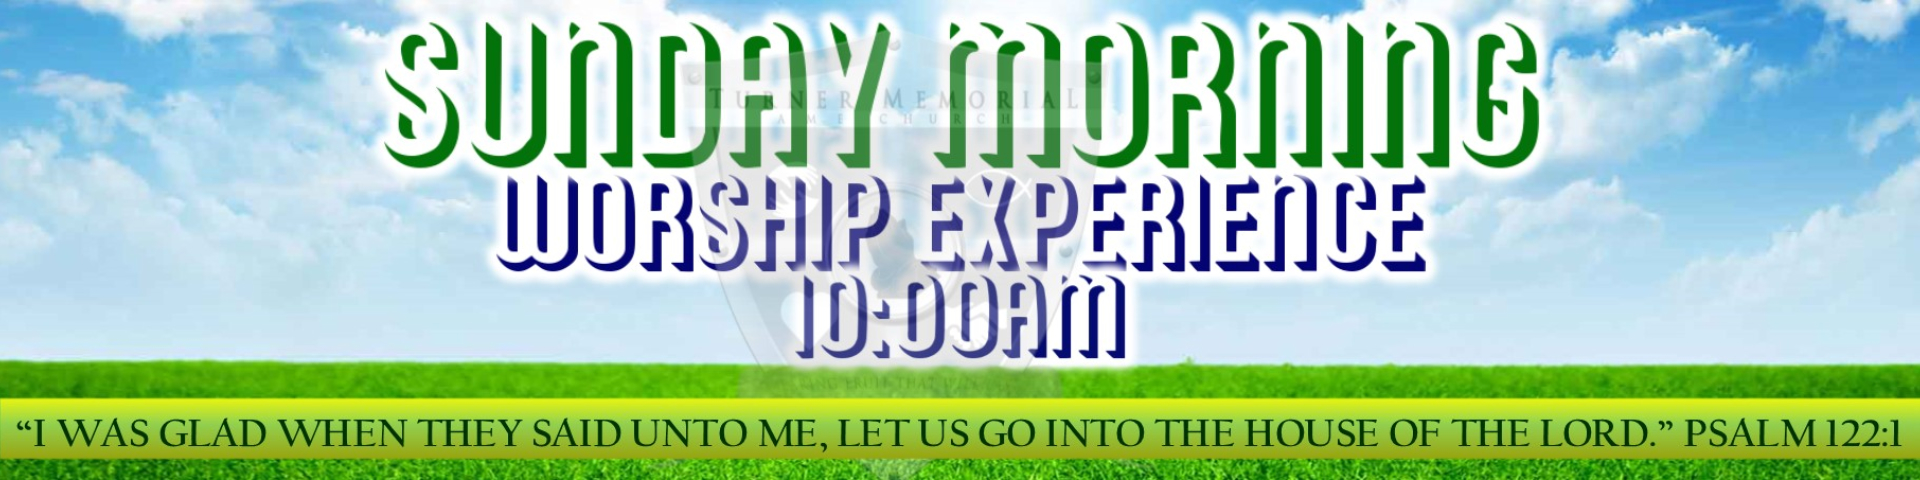 The Sunday AM Worship Banner